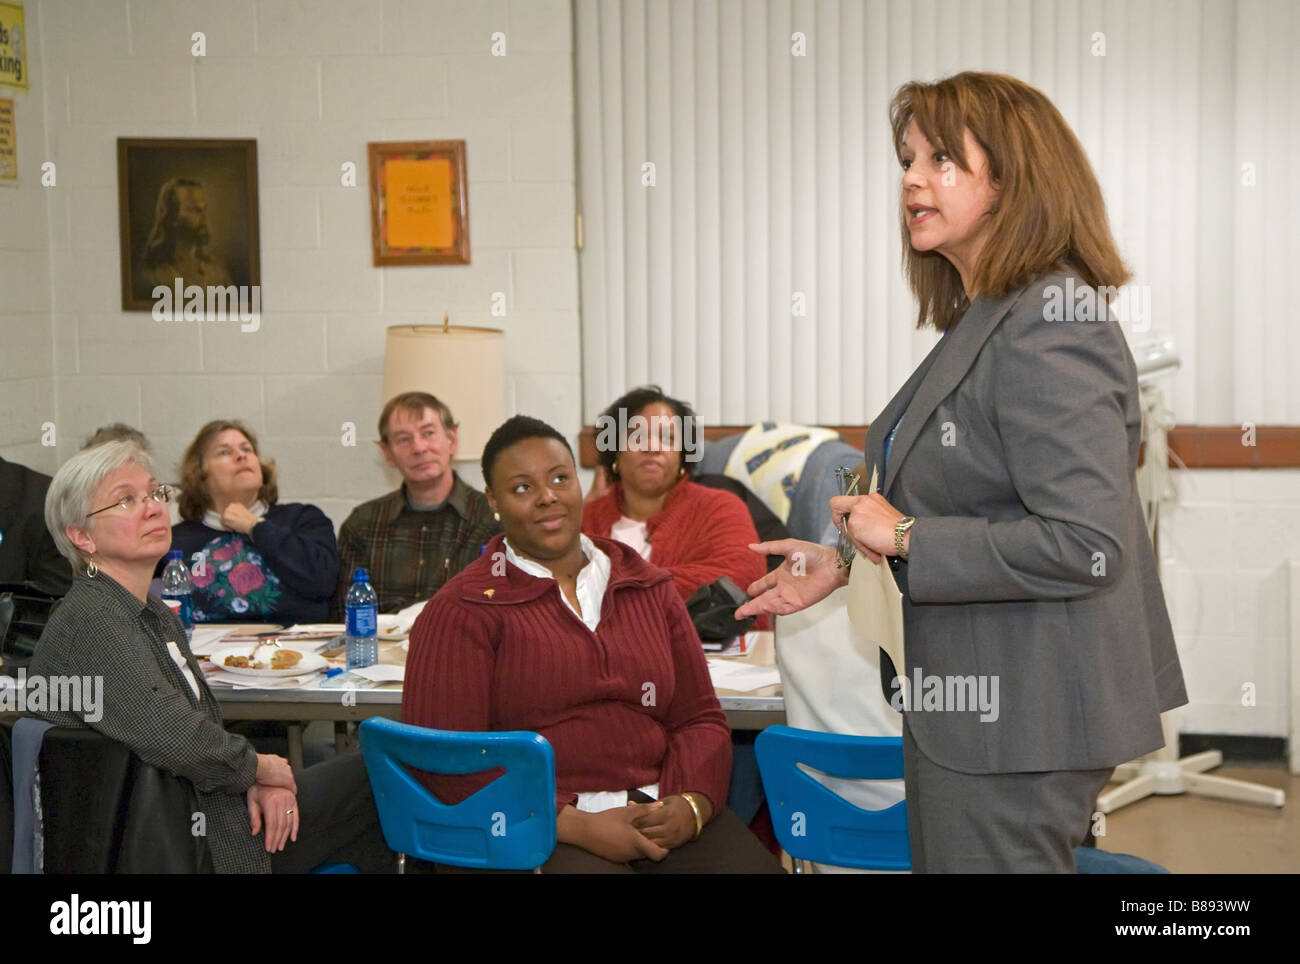 Political Candidate Speaks to Community Group - Stock Image